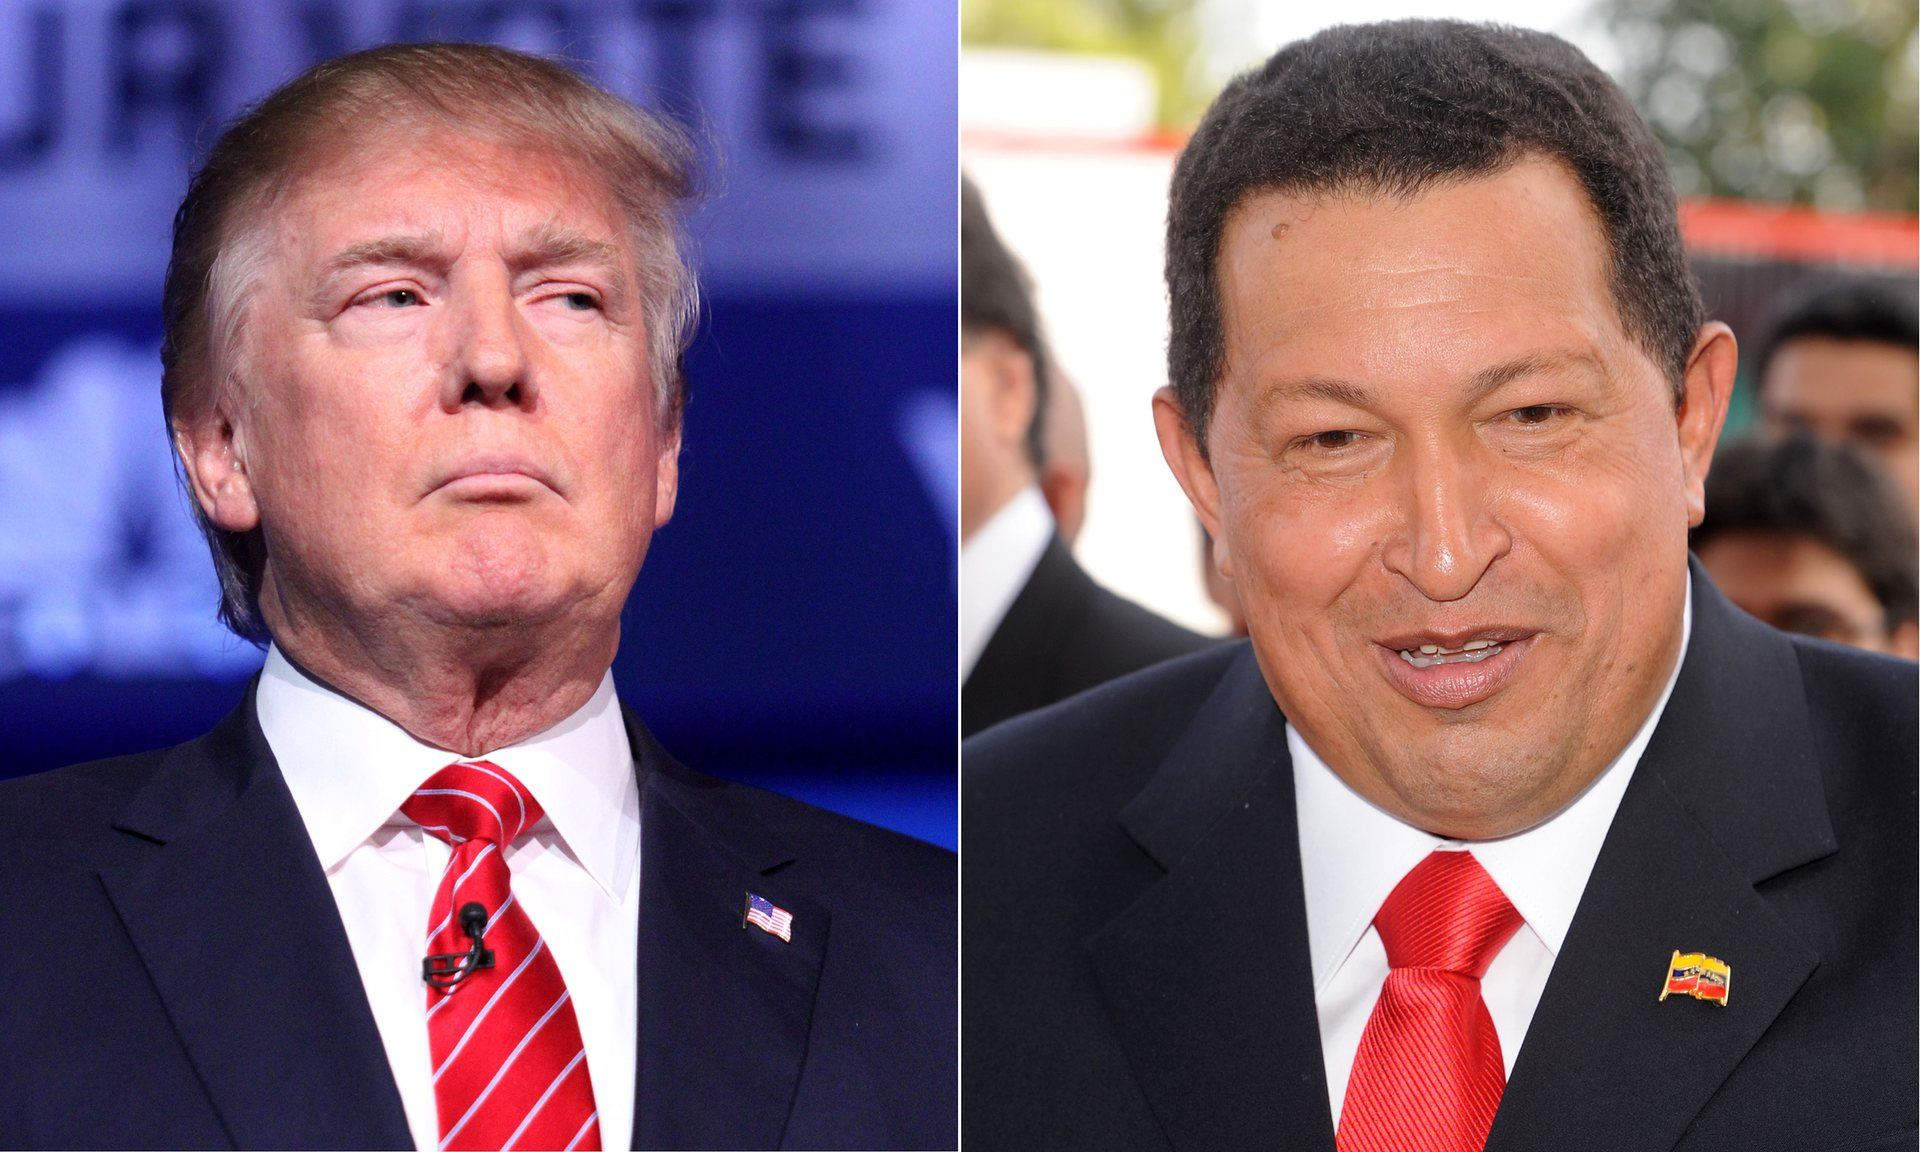 Both Donald Trump and Venezuelan leader Hugo Chávez broke all the rules of presidential conduct. Composite: Rex Features